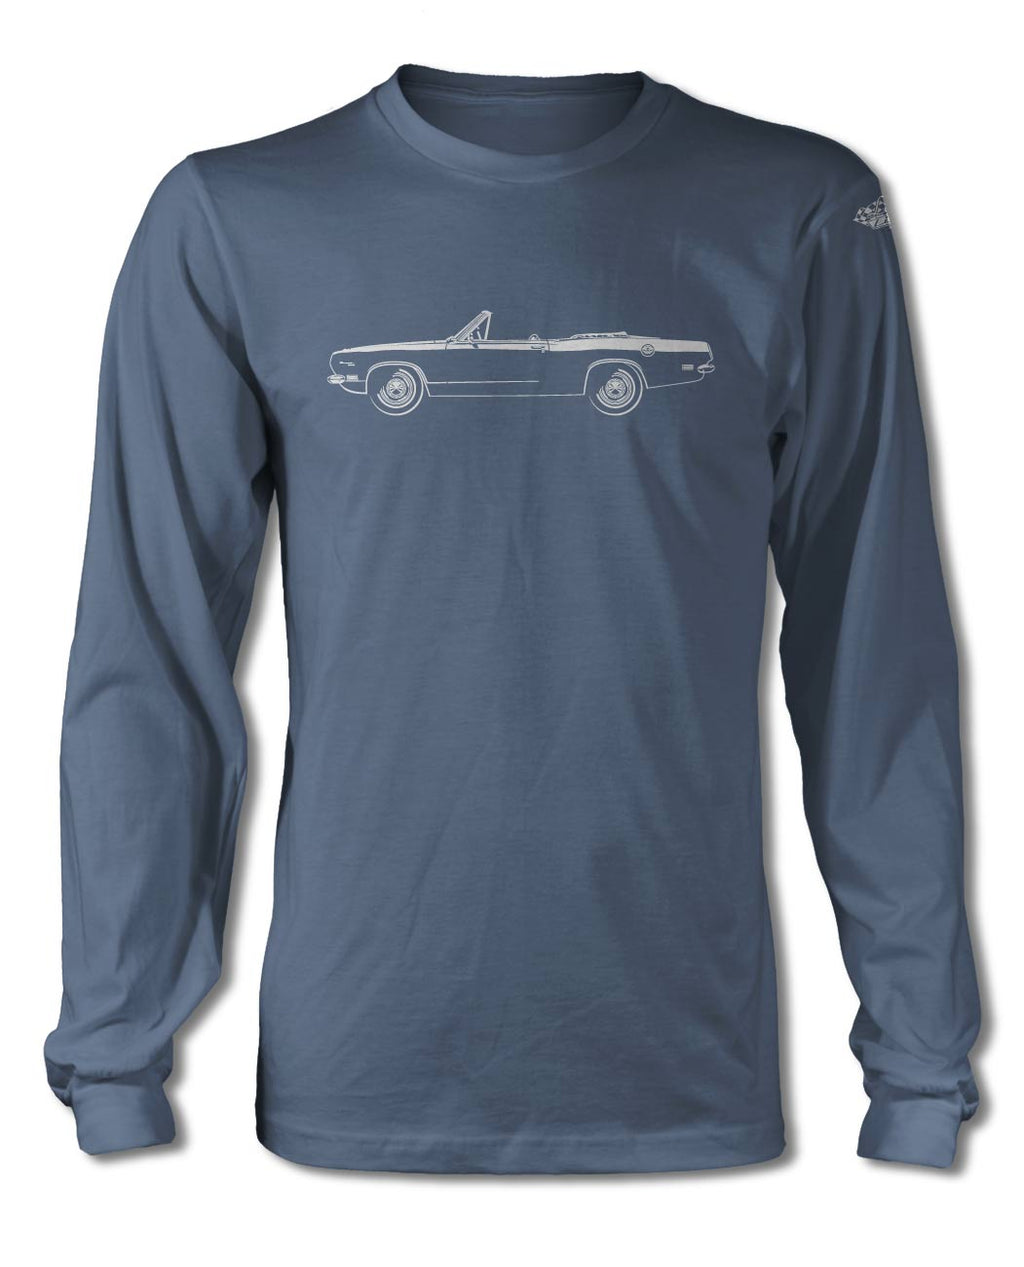 1969 Plymouth Barracuda Convertible T-Shirt - Long Sleeves - Side View